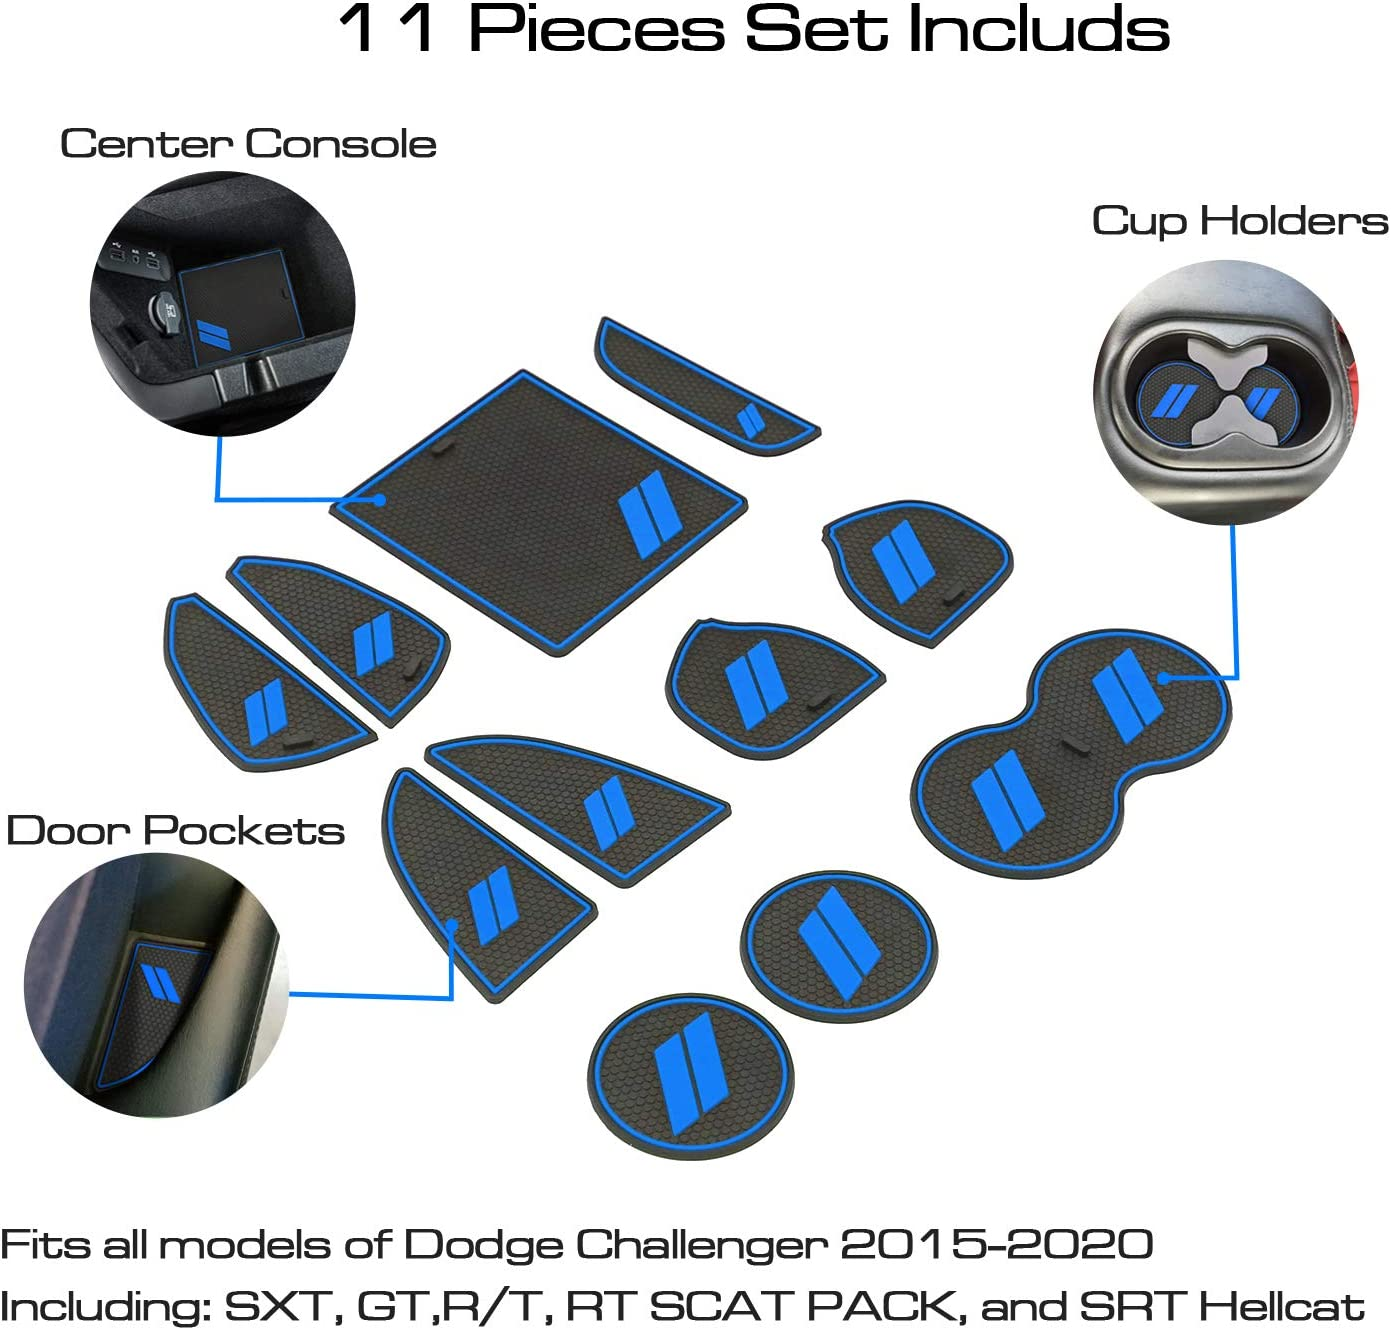 Center Console Liners Mat Interior Door Pocket Liners 11-pc Blue Trim ABESTcar for Dodge Challenger Accessories Cup Holder Insert 2015-2020